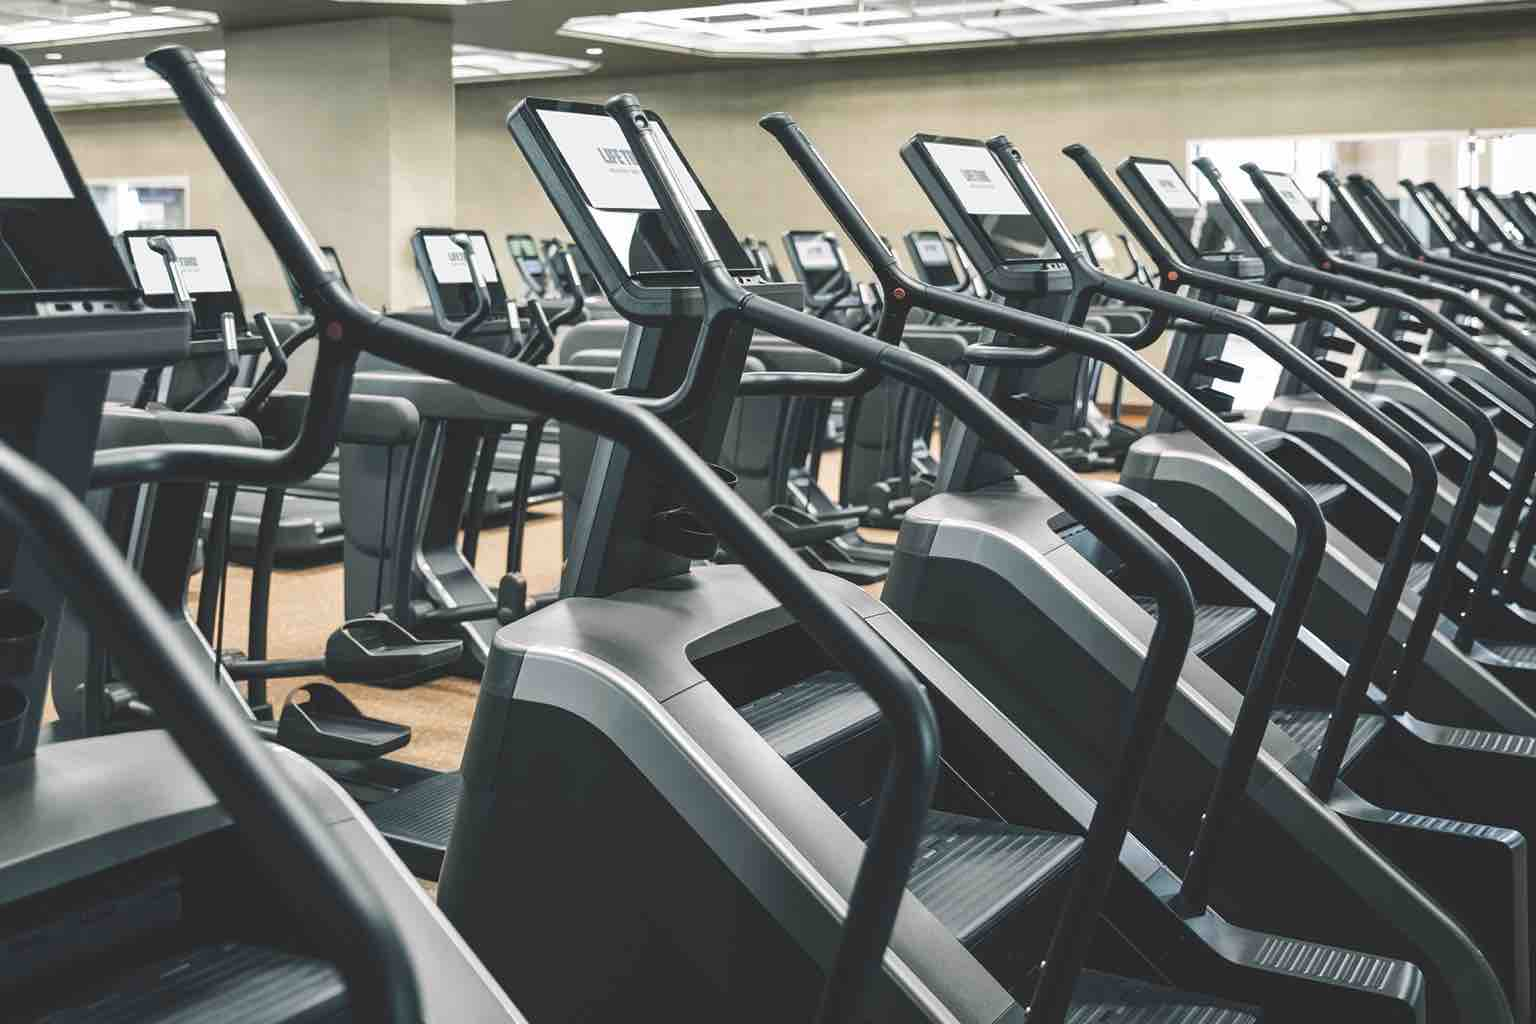 Rows of cardio machines lined up on the fitness floor at Life Time Flat Irons